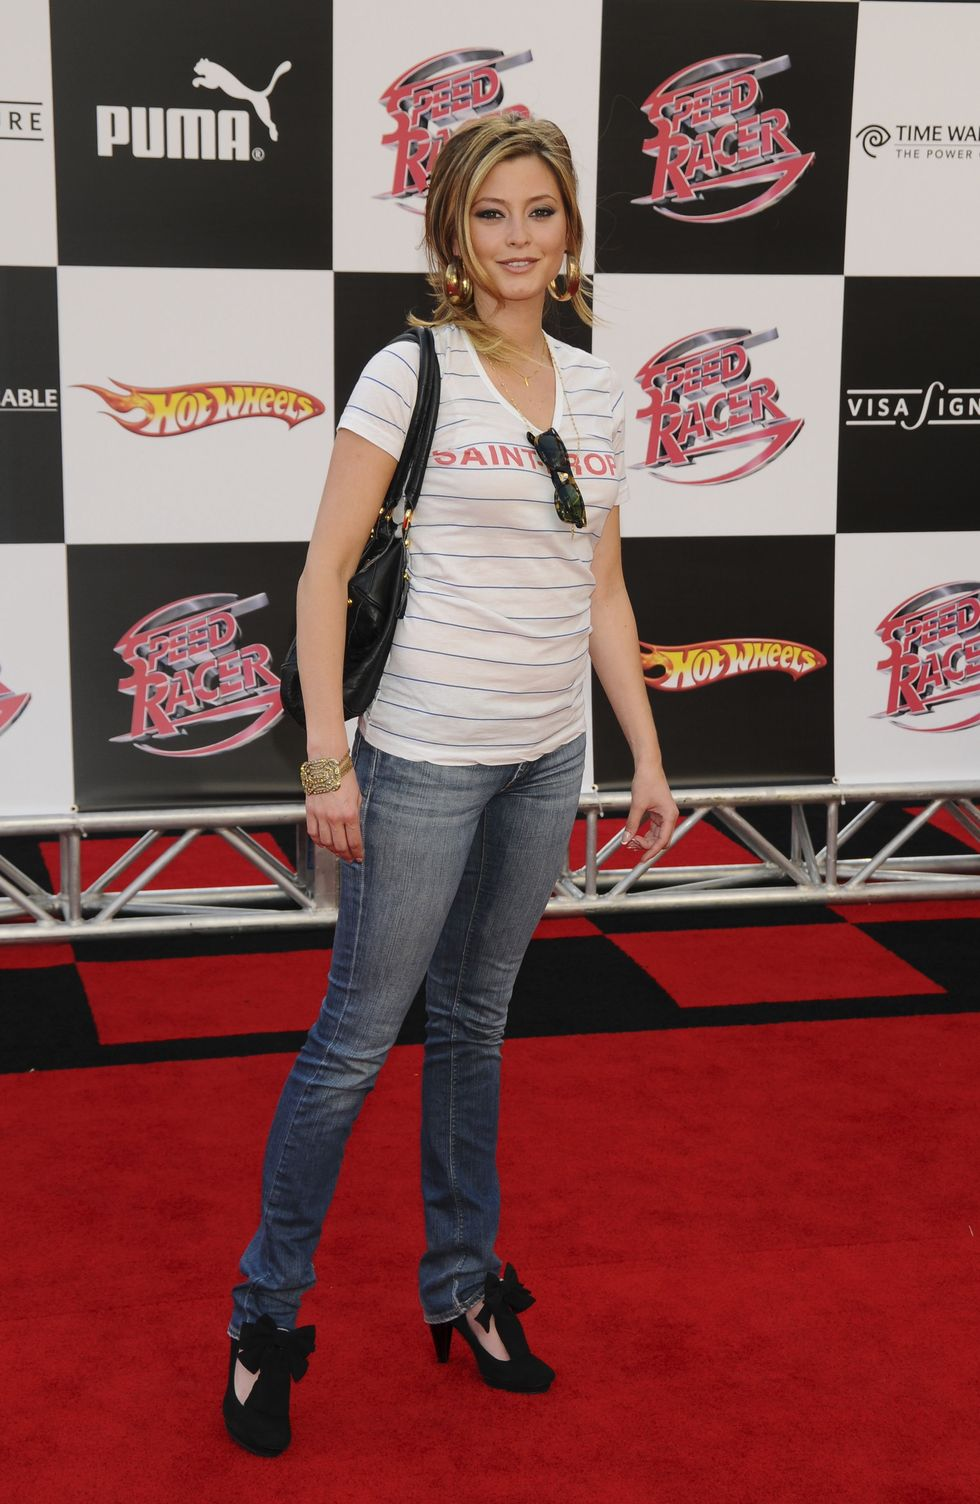 holly-valance-speed-racer-premiere-in-los-angeles-01